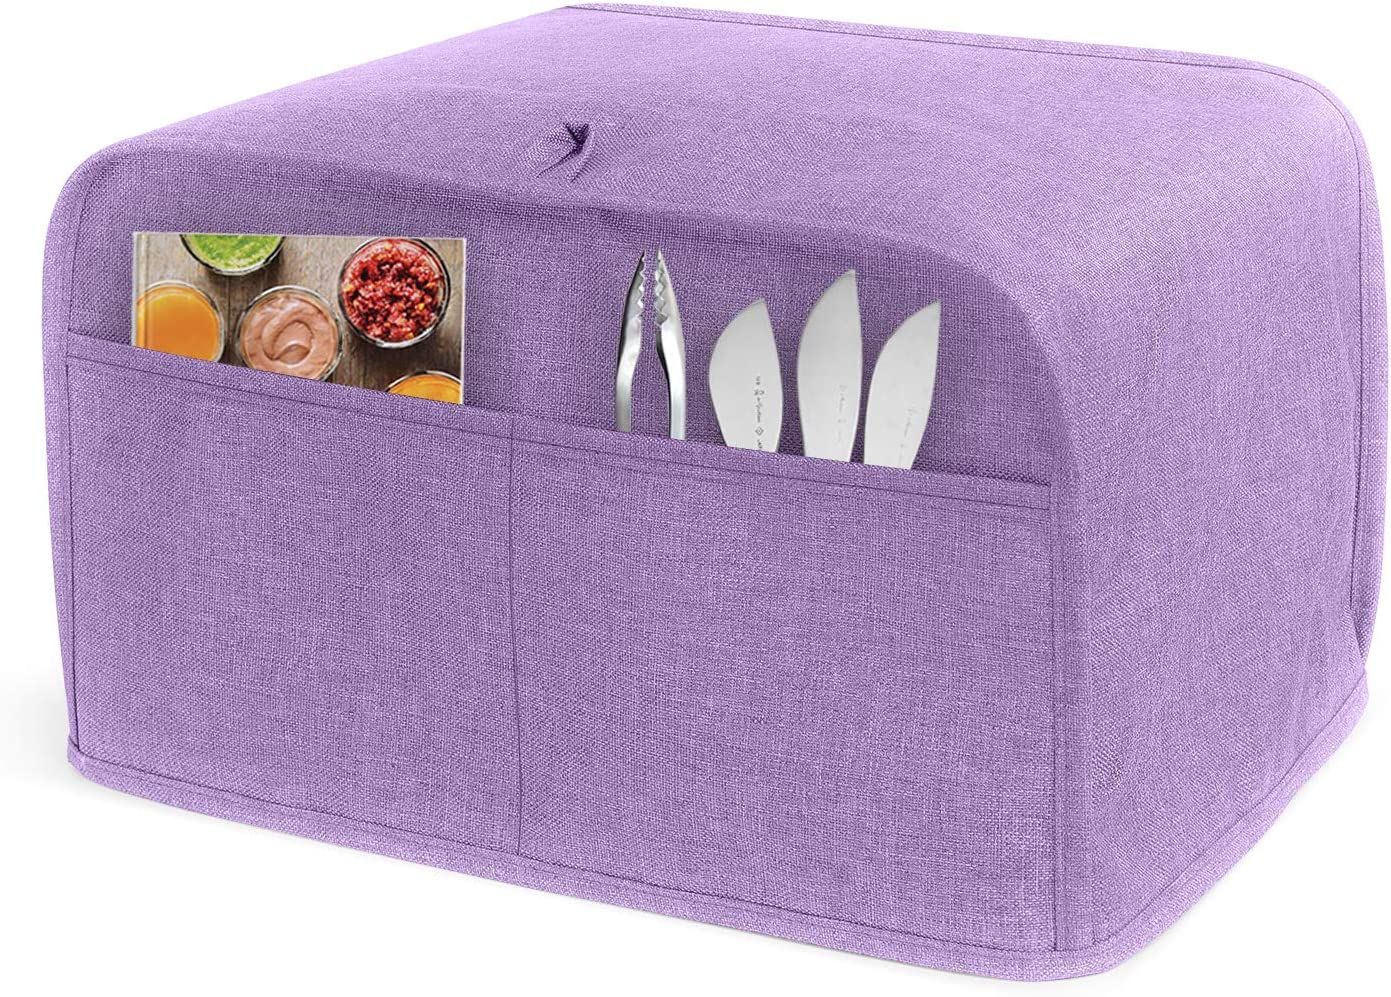 LUXJA 4 Slice Toaster Cover (12.5 x 10 x 8 inches), Toaster Cover with 2 Pockets (Fits for Most Major 4 Slice Toasters), Lavender